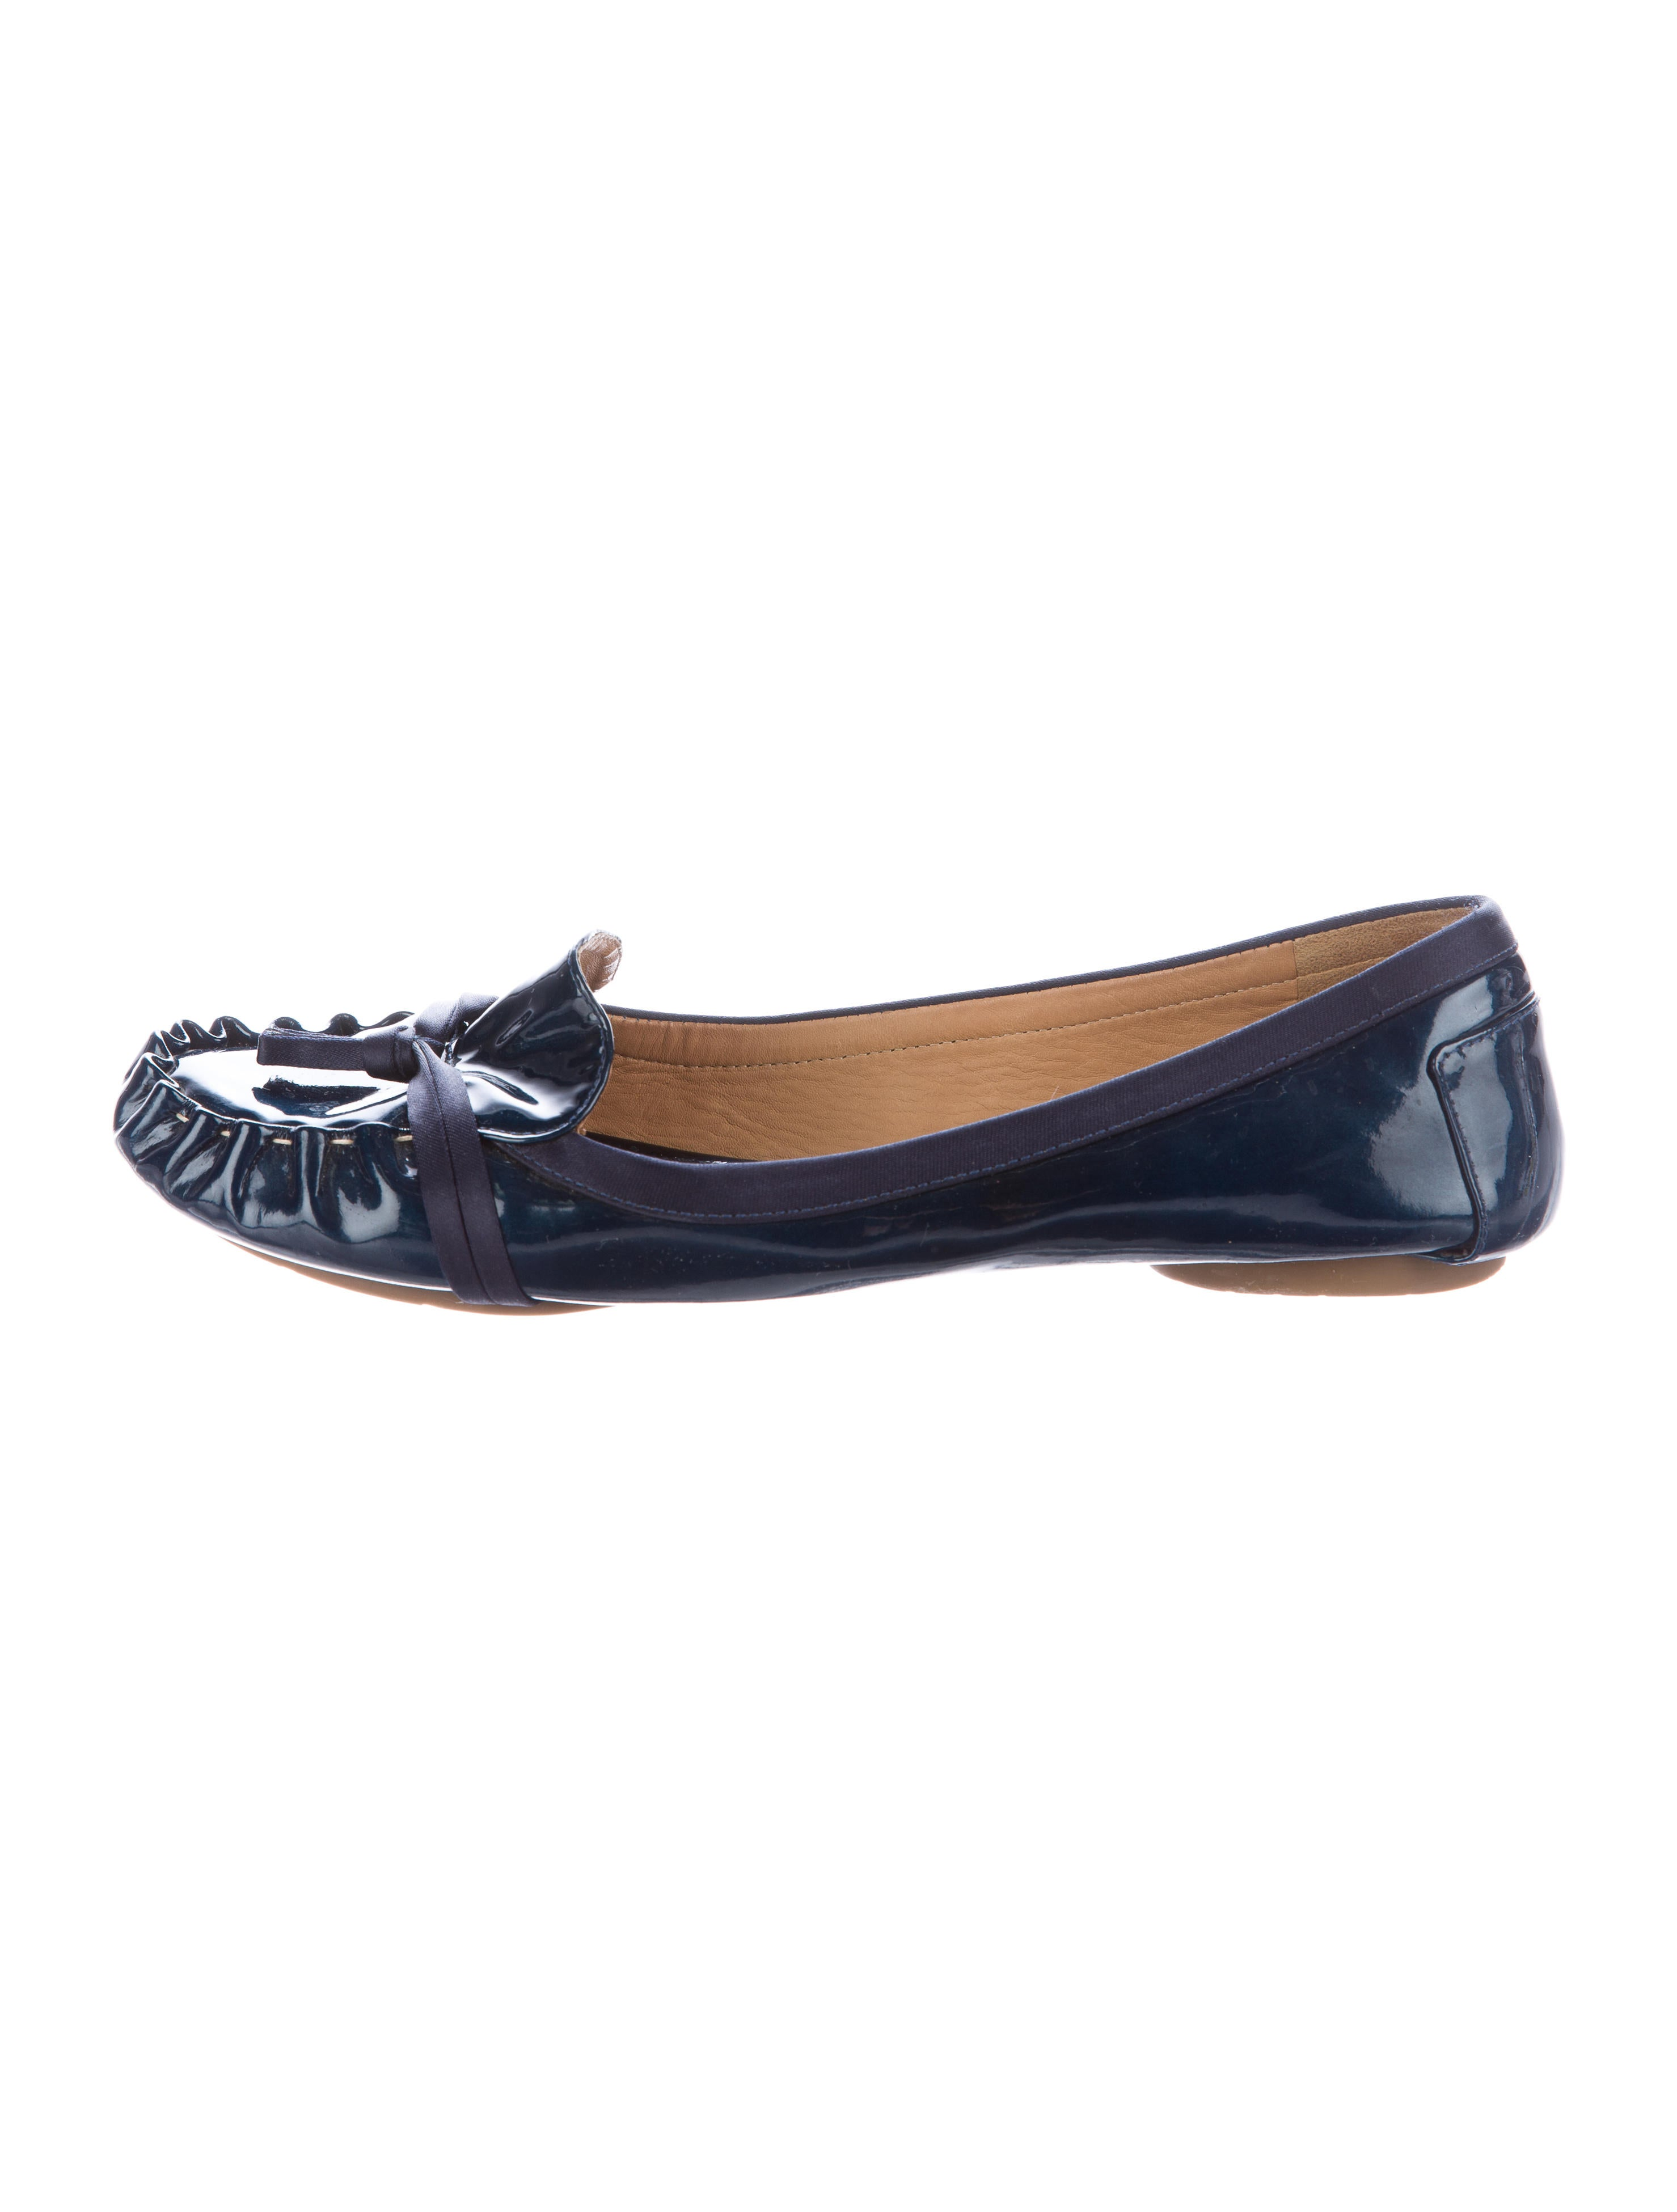 kate spade new york knot accented patent leather flats